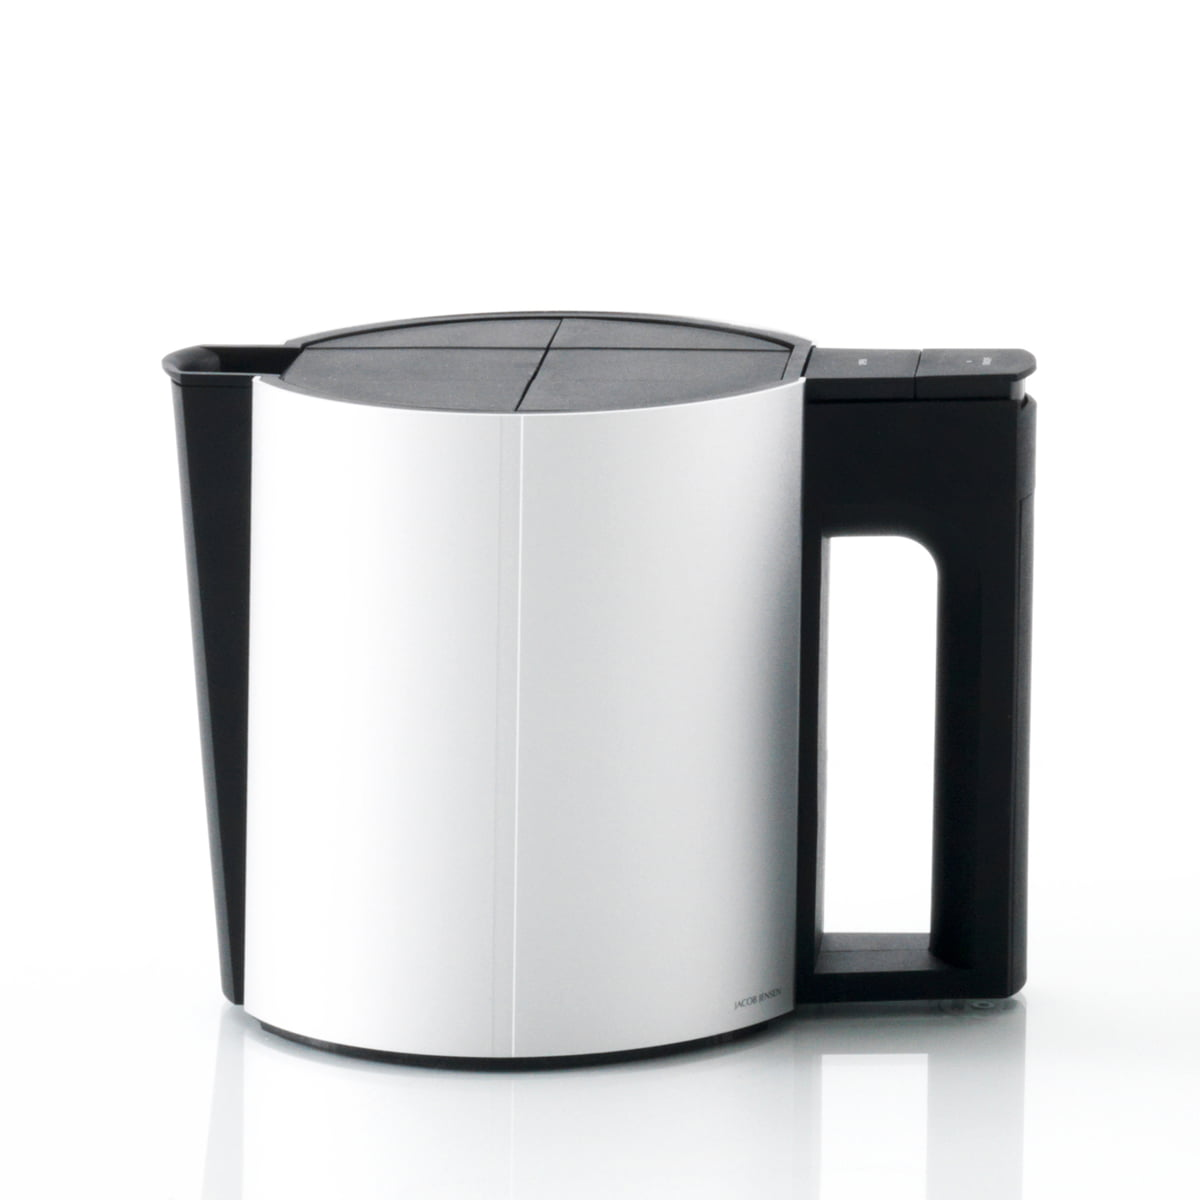 kettle by jacob jensen in our interior design shop. Black Bedroom Furniture Sets. Home Design Ideas